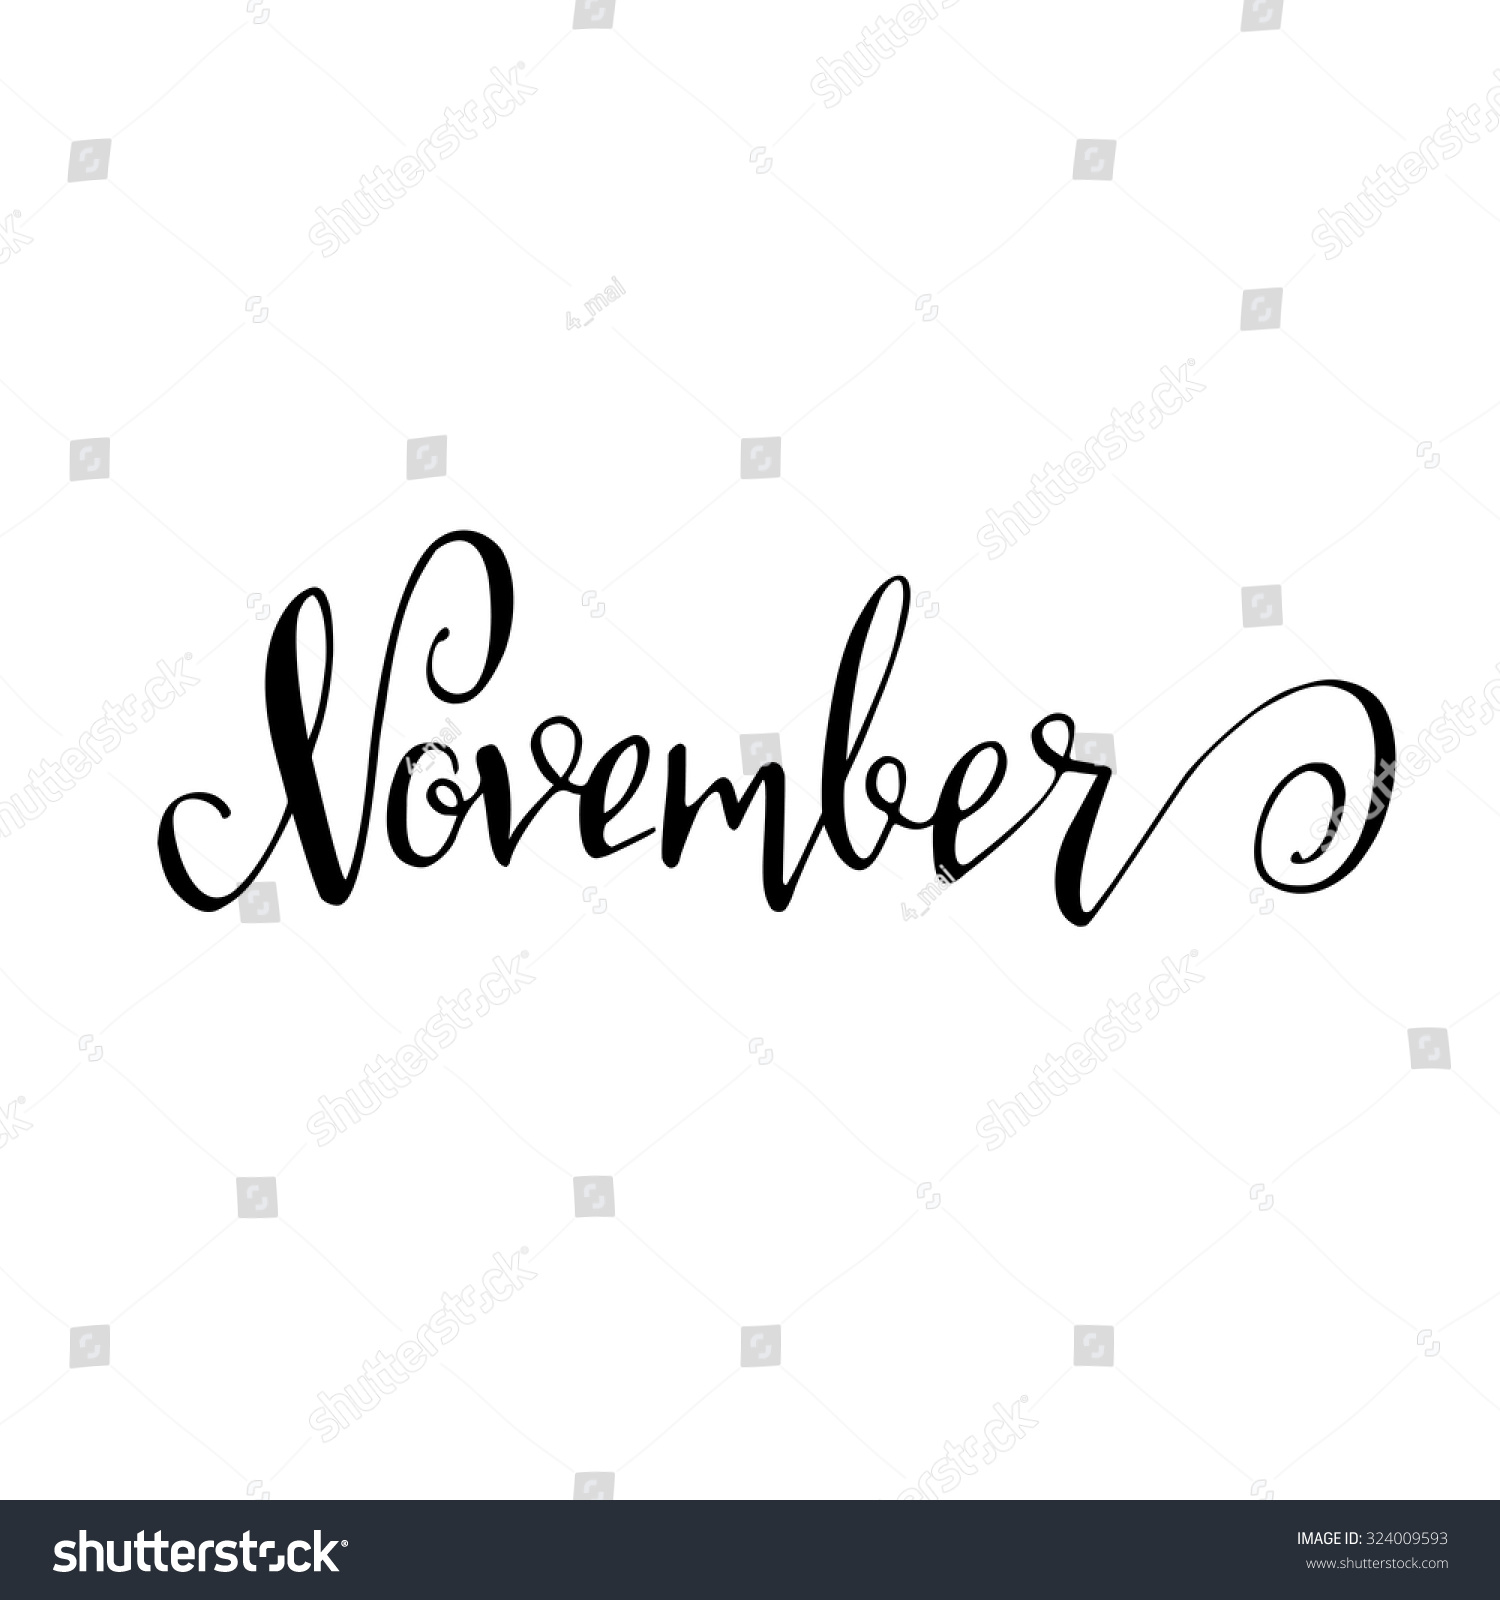 November month lettering calligraphy sign isolated on Images of calligraphy